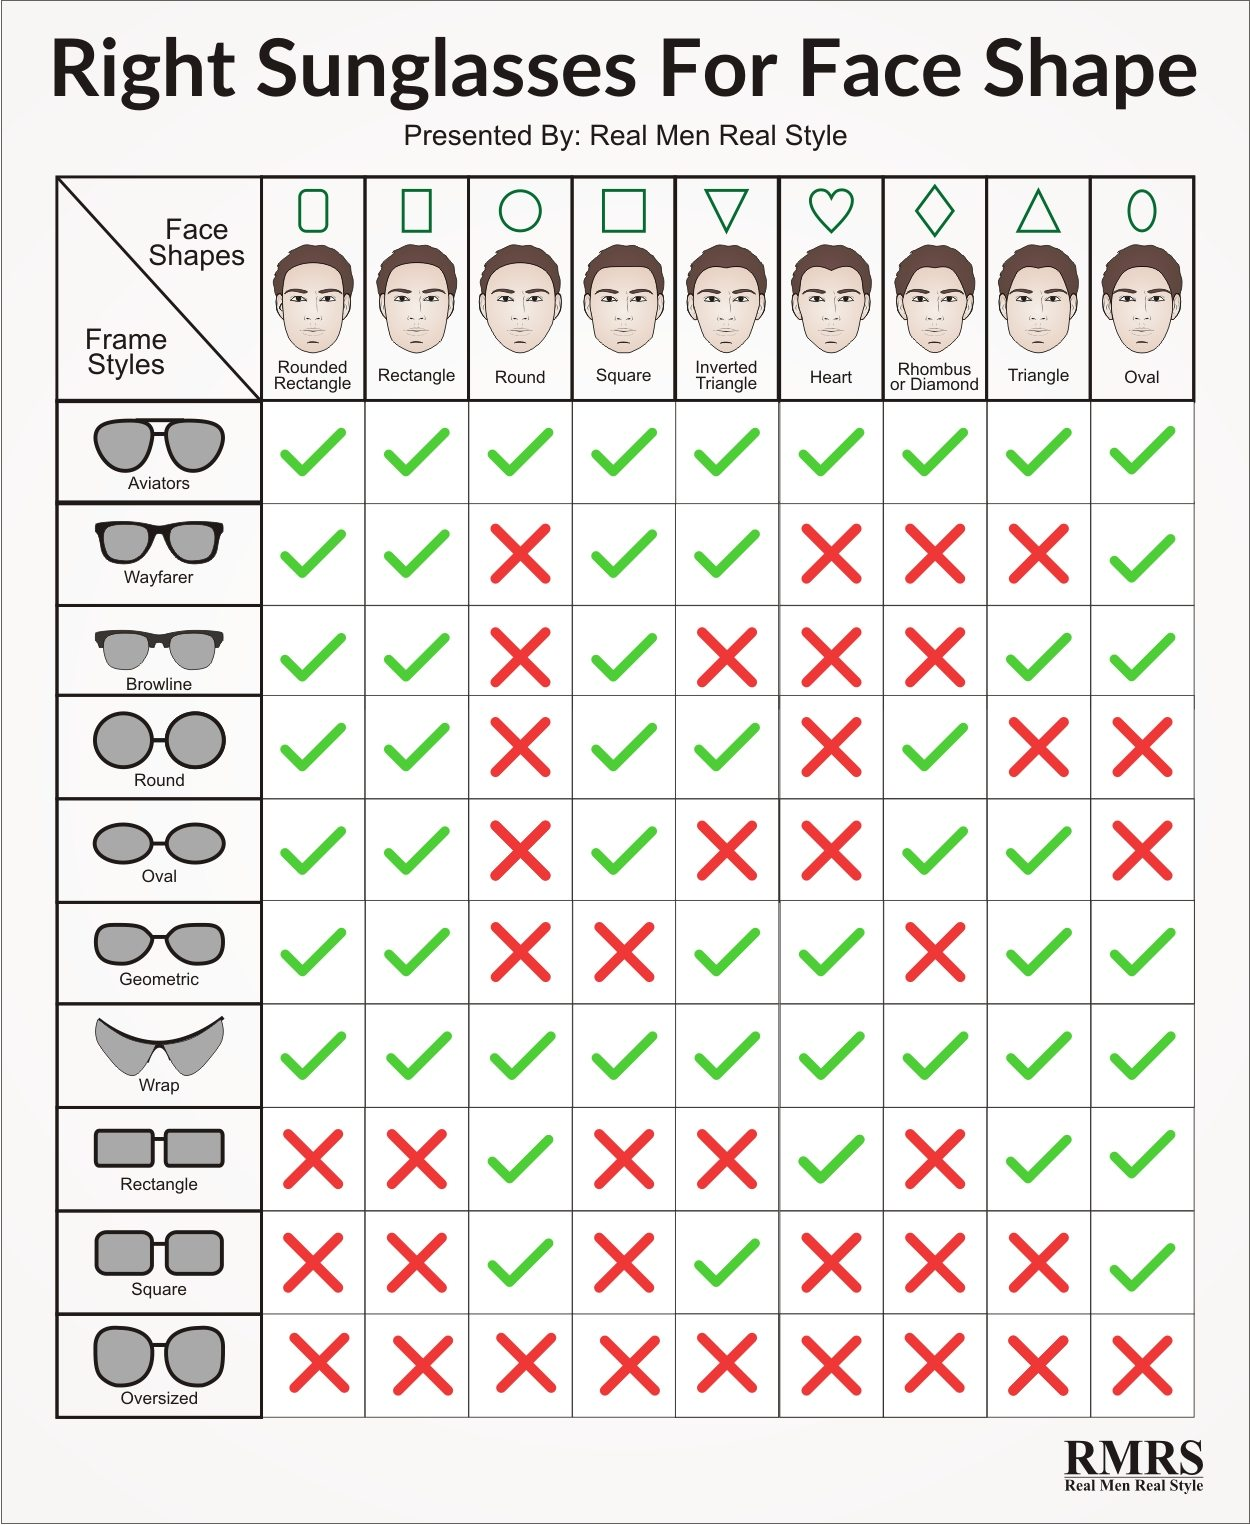 Best Glasses Frame For Face Shape : The Right Sunglasses For Your Face Shape Infographic